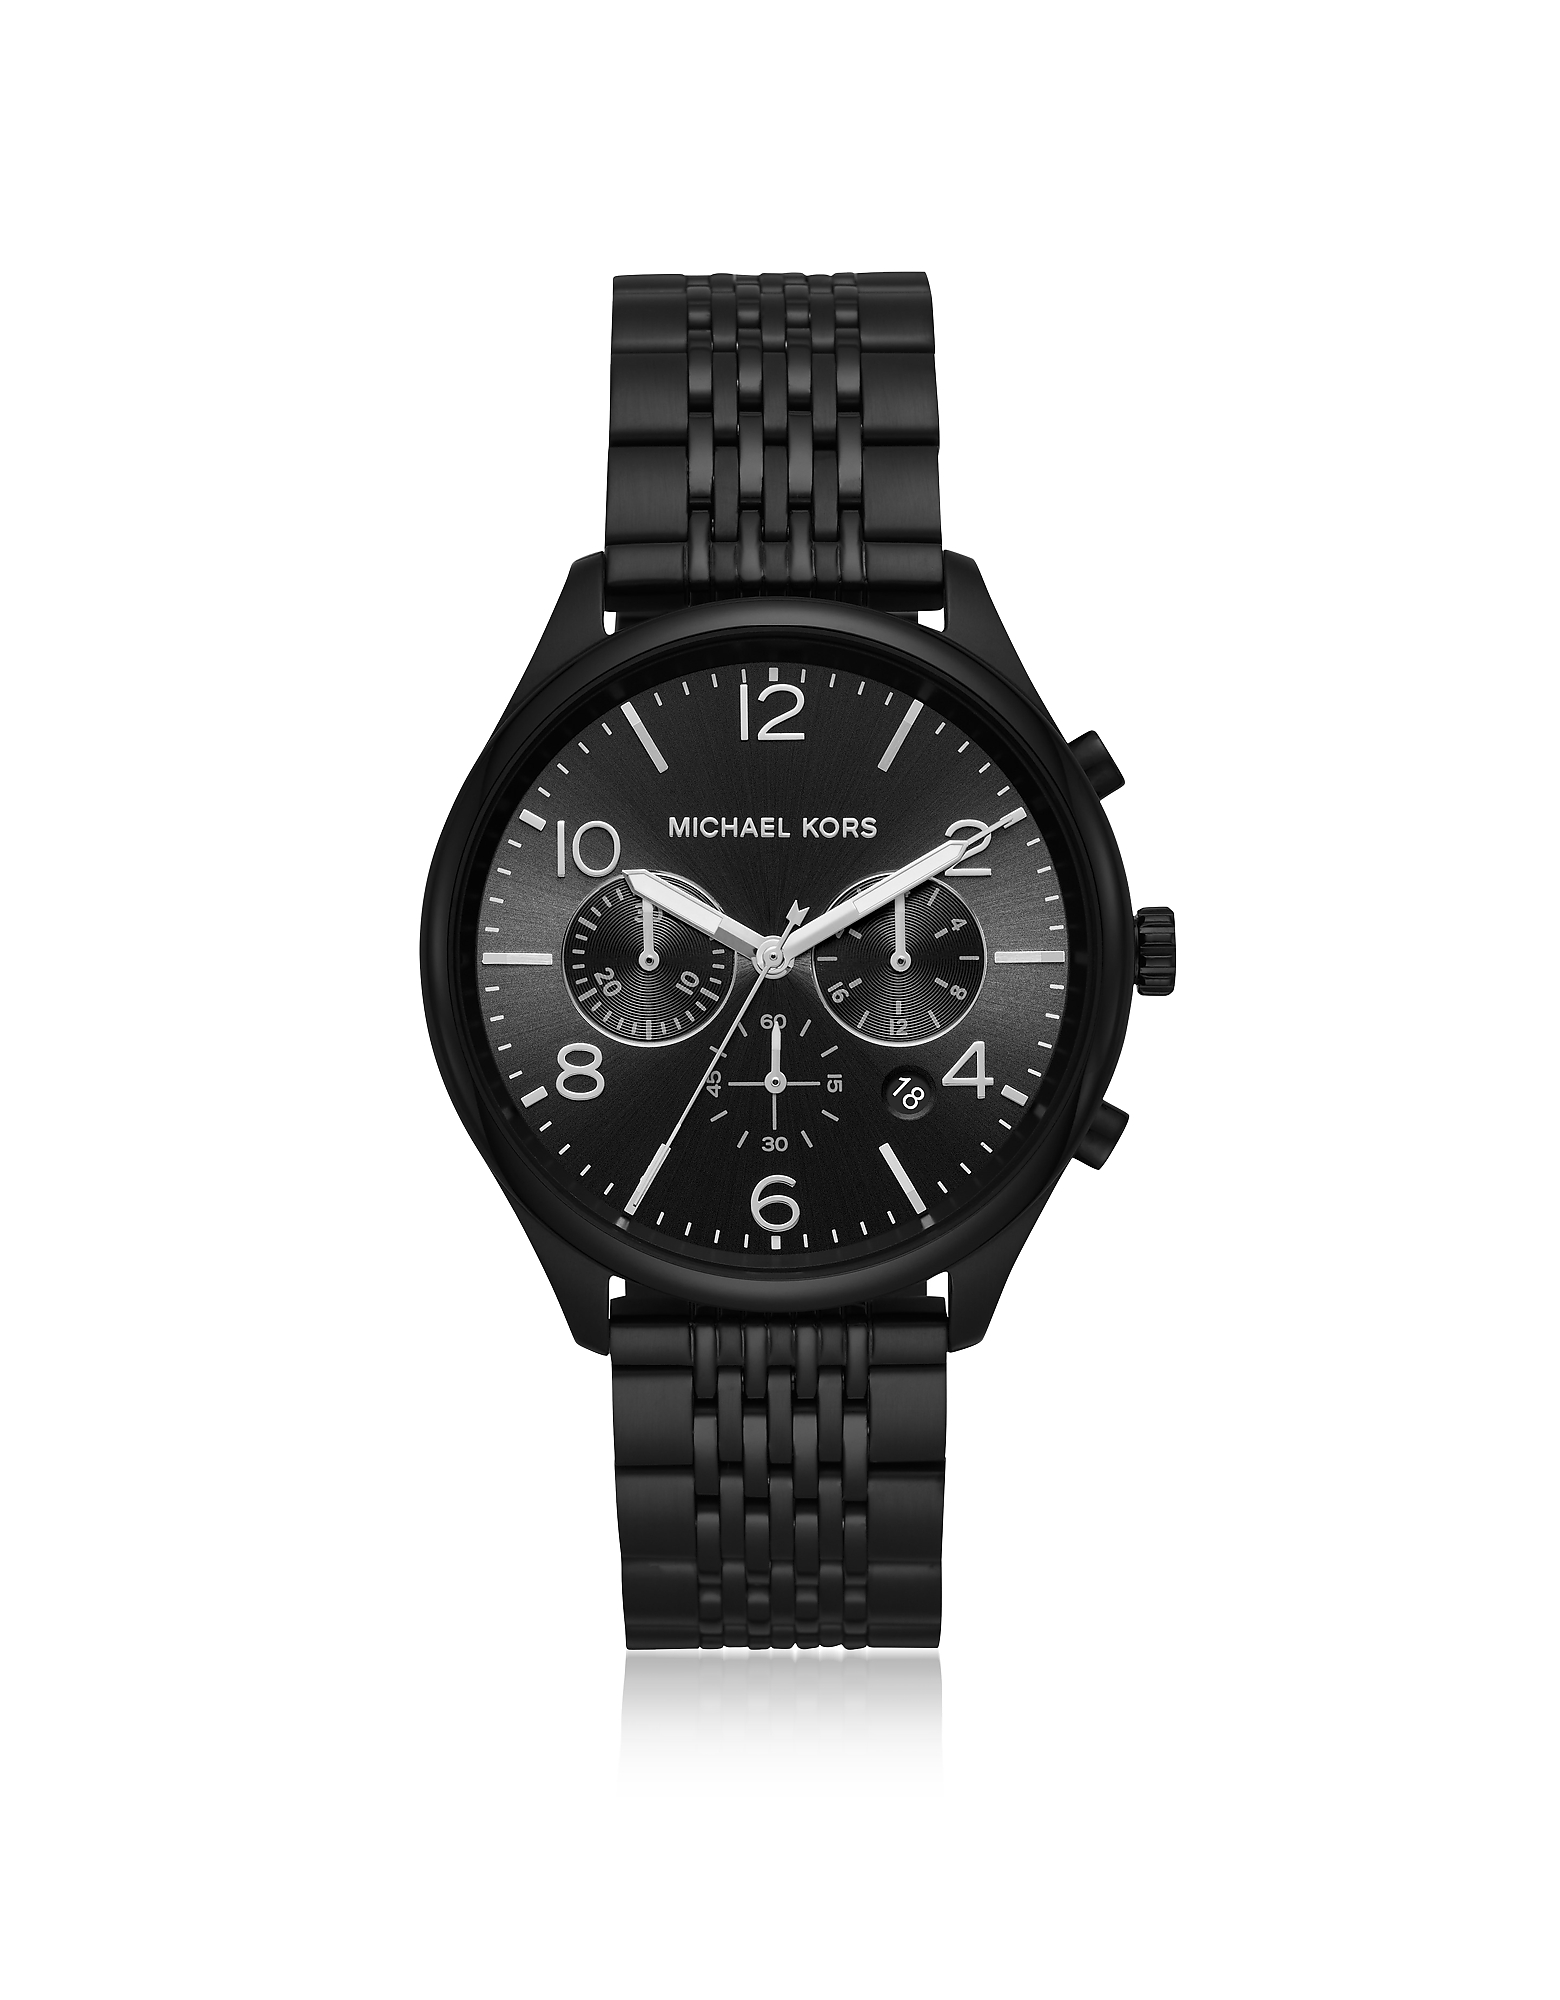 Merrick Black Plated Chronograph Watch